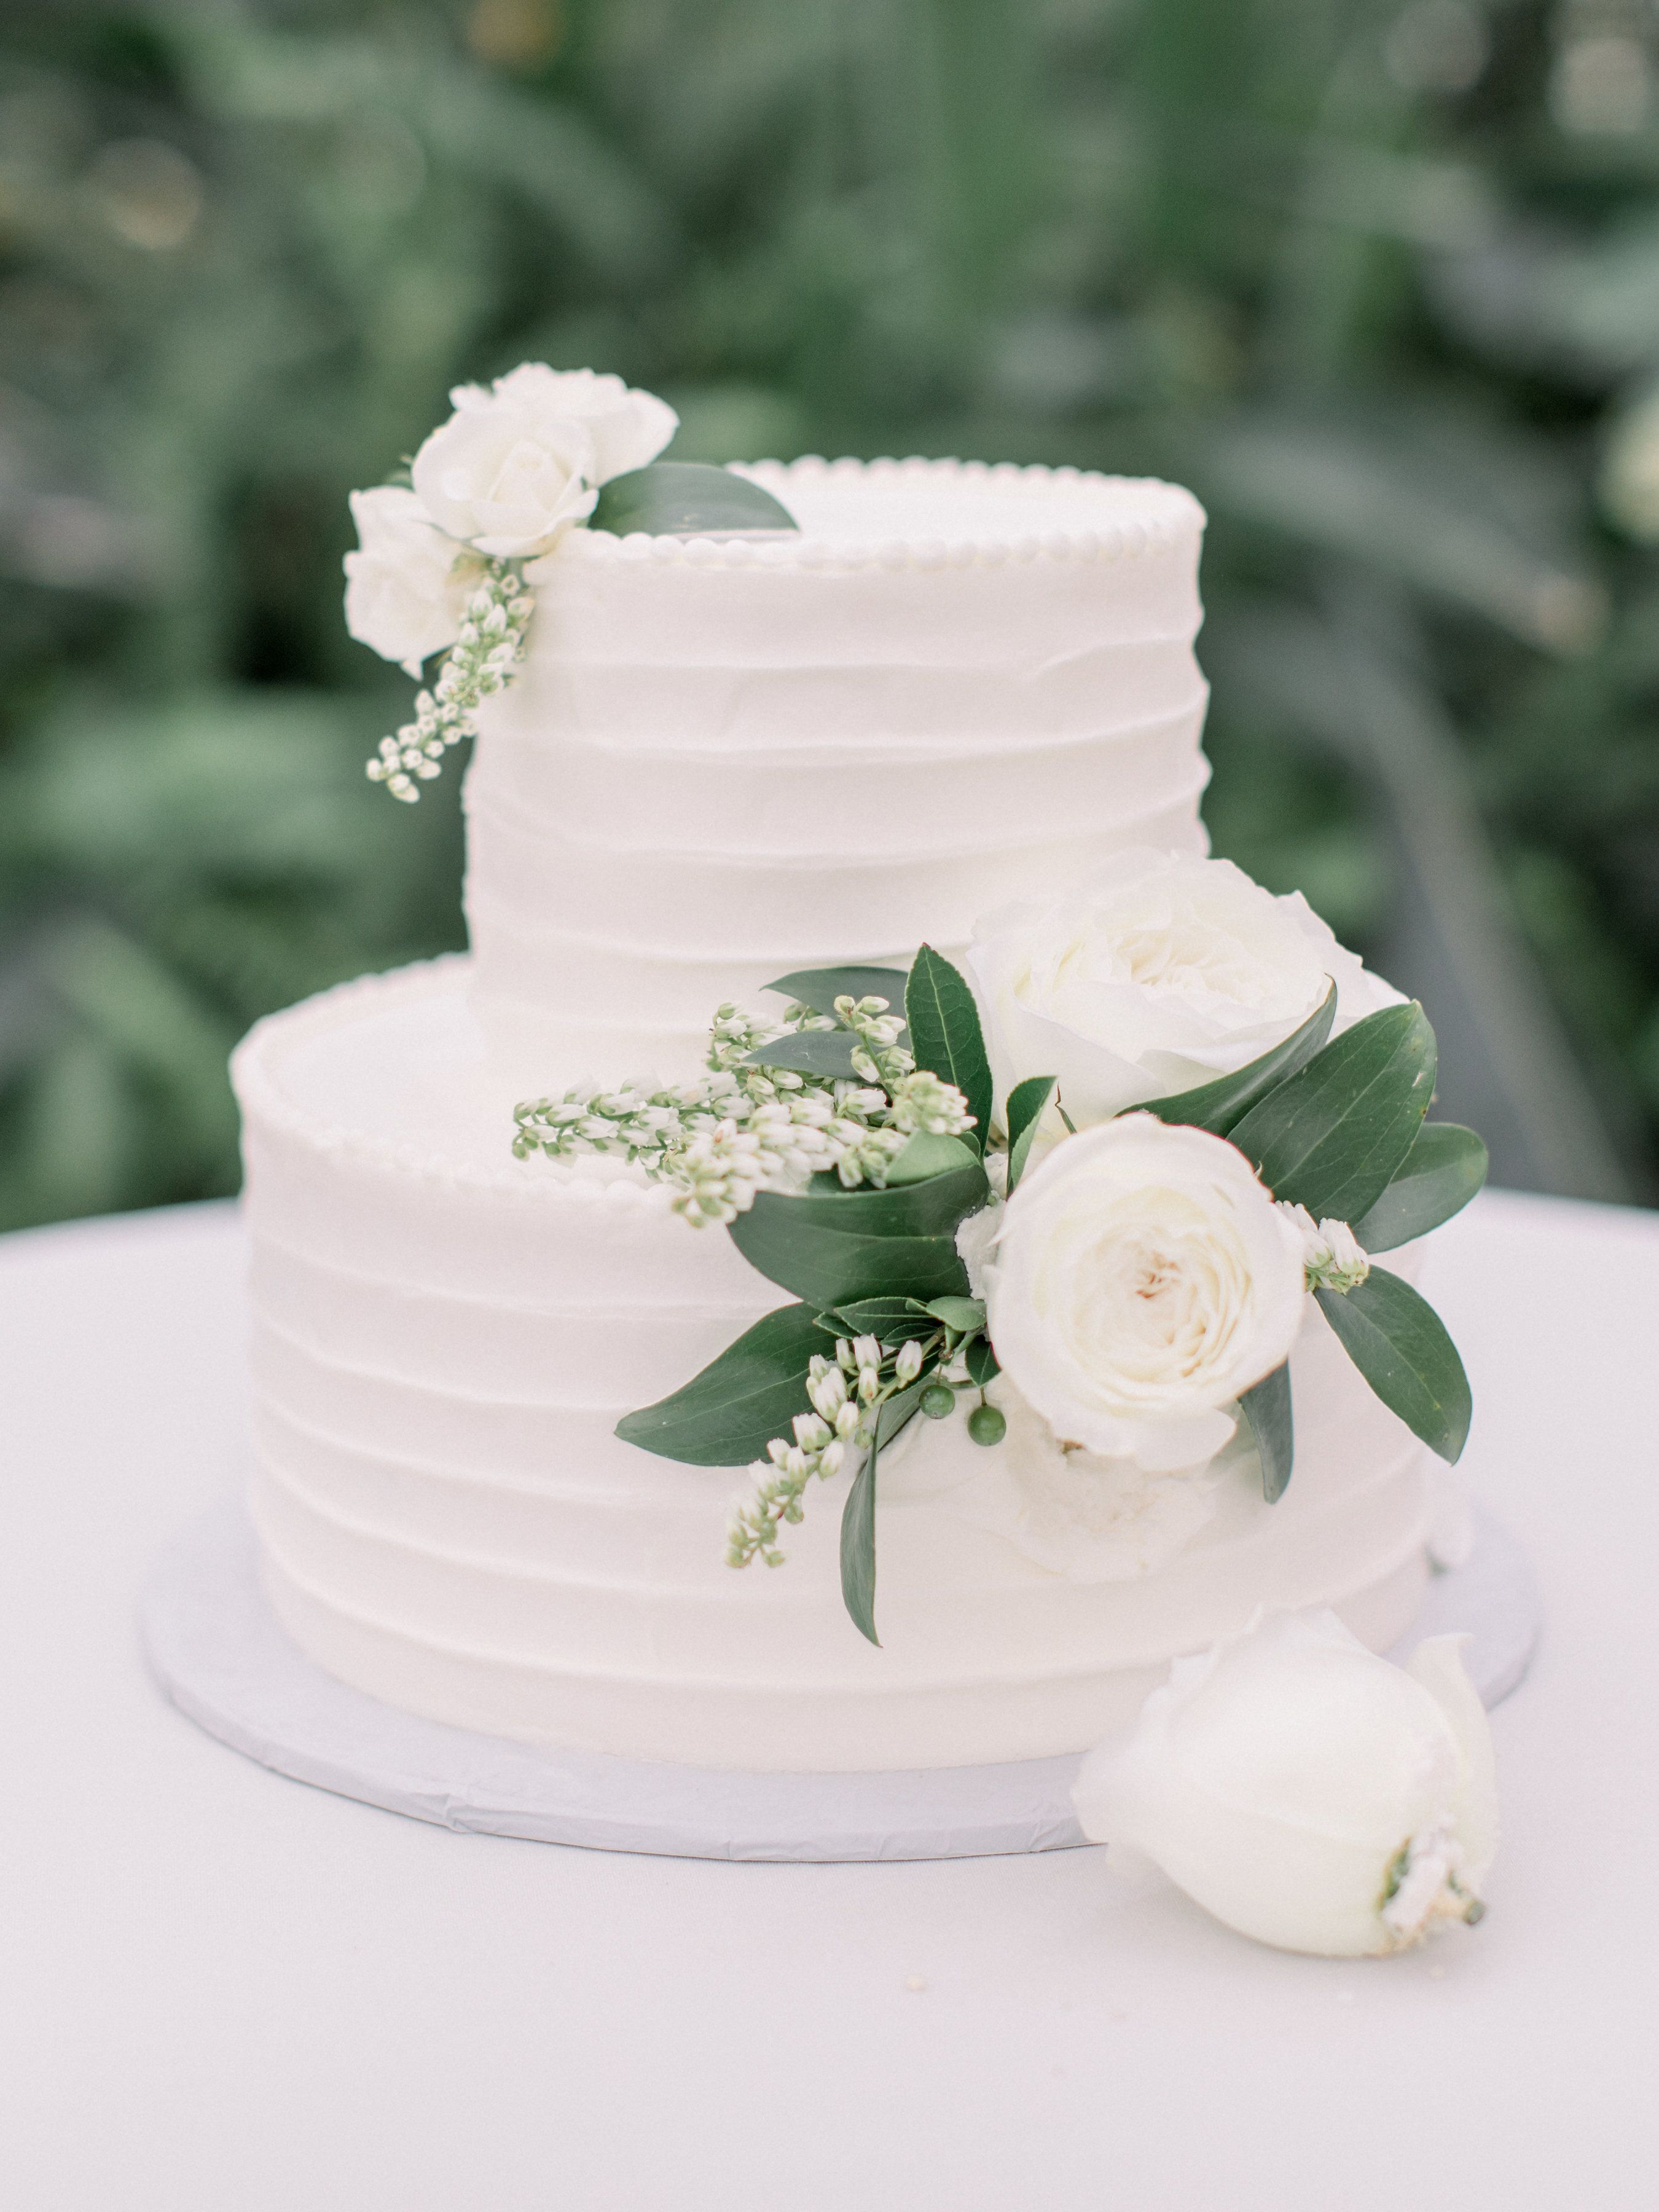 Simple And Elegant White Wedding Cake With White Flowers And